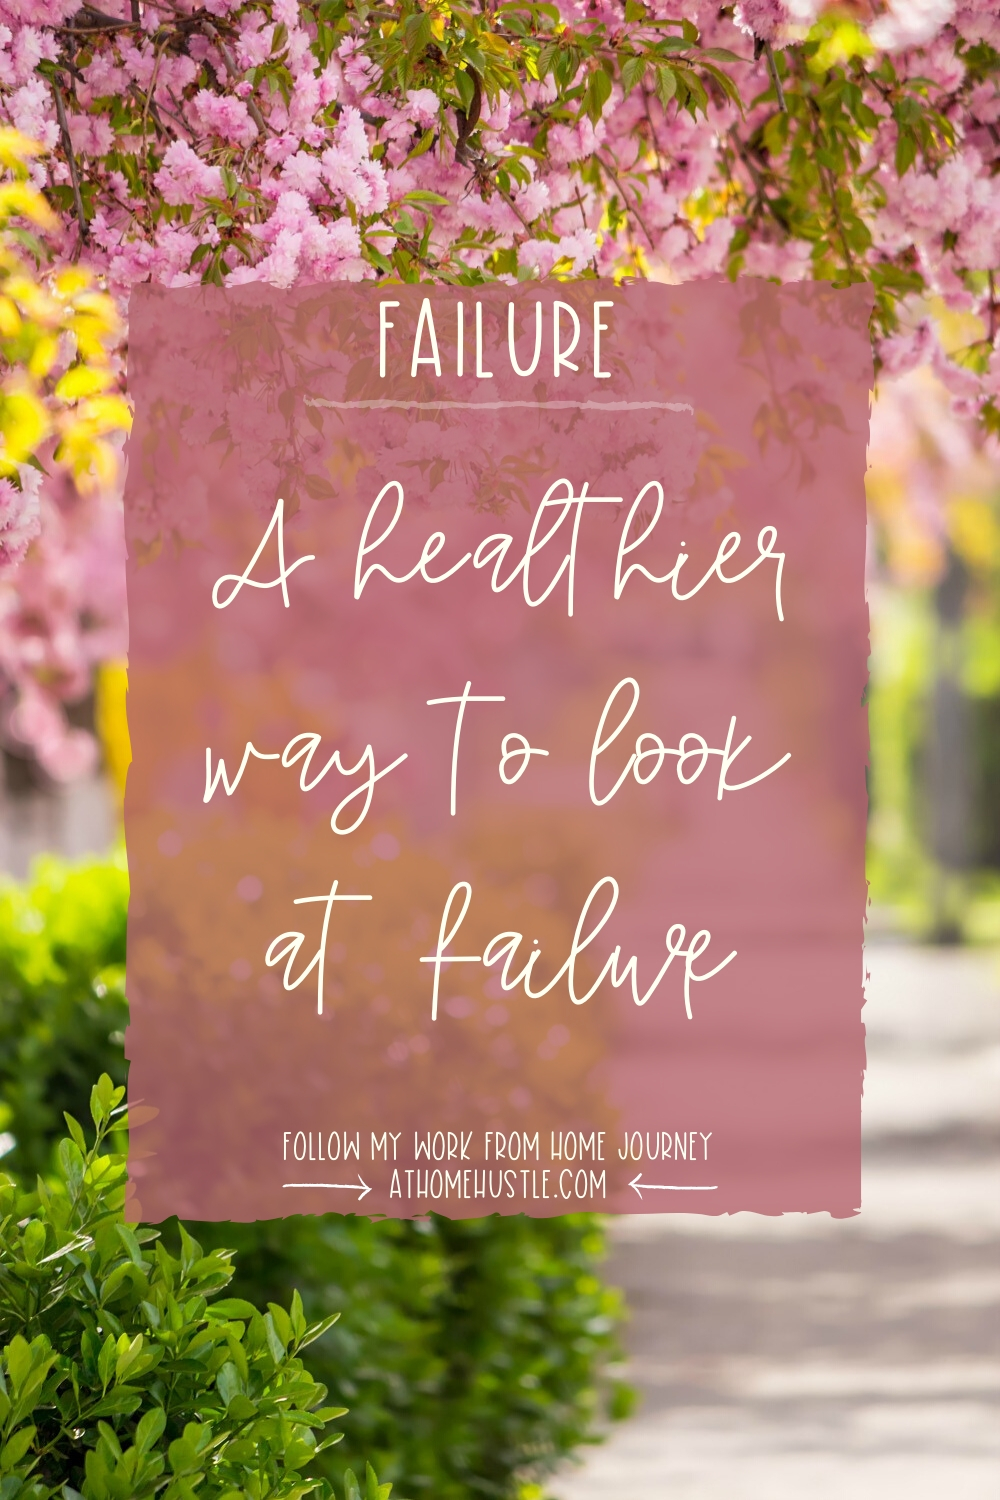 Pretty pathway with A healthier way to look at failure typed out